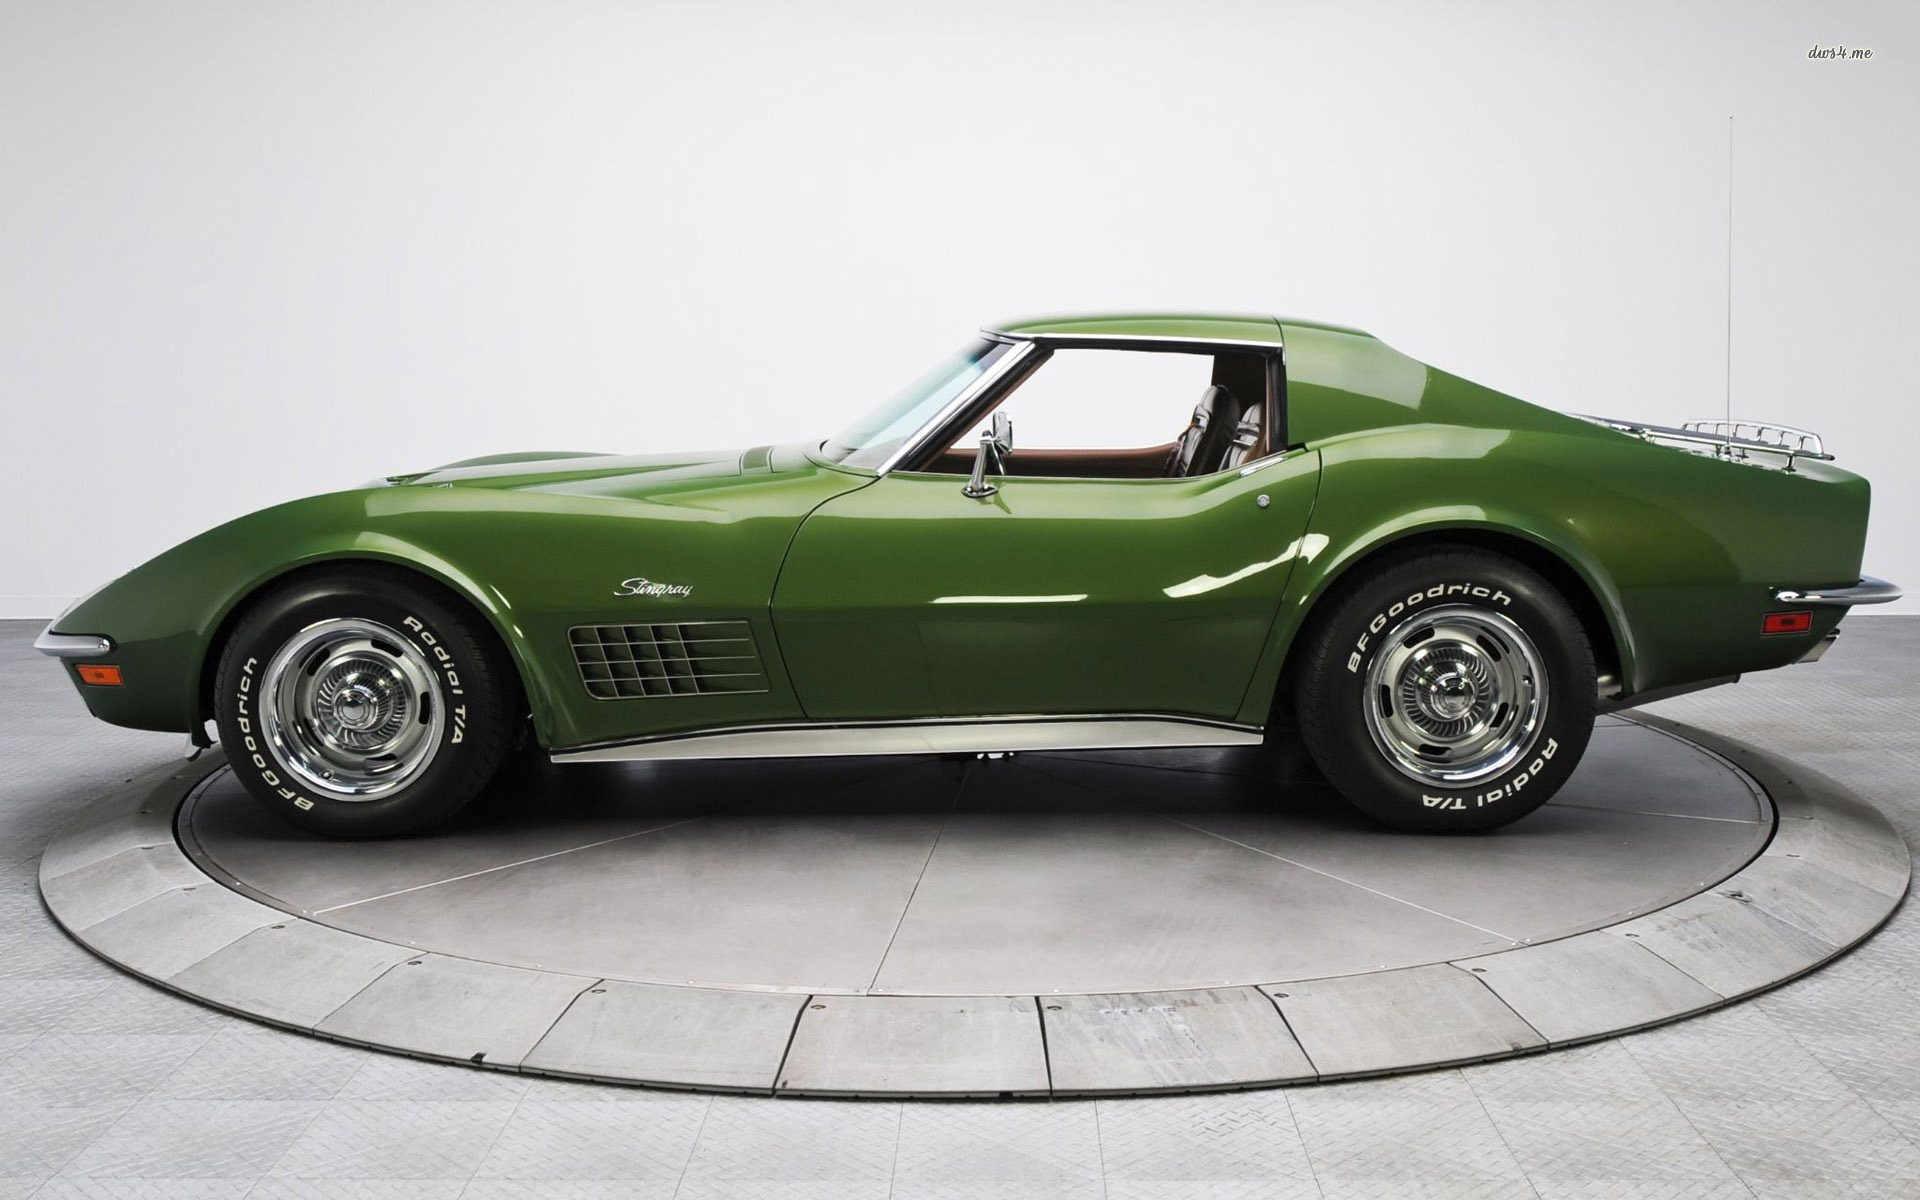 1974 c3 corvette ultimate guide overview specs vin info performance more